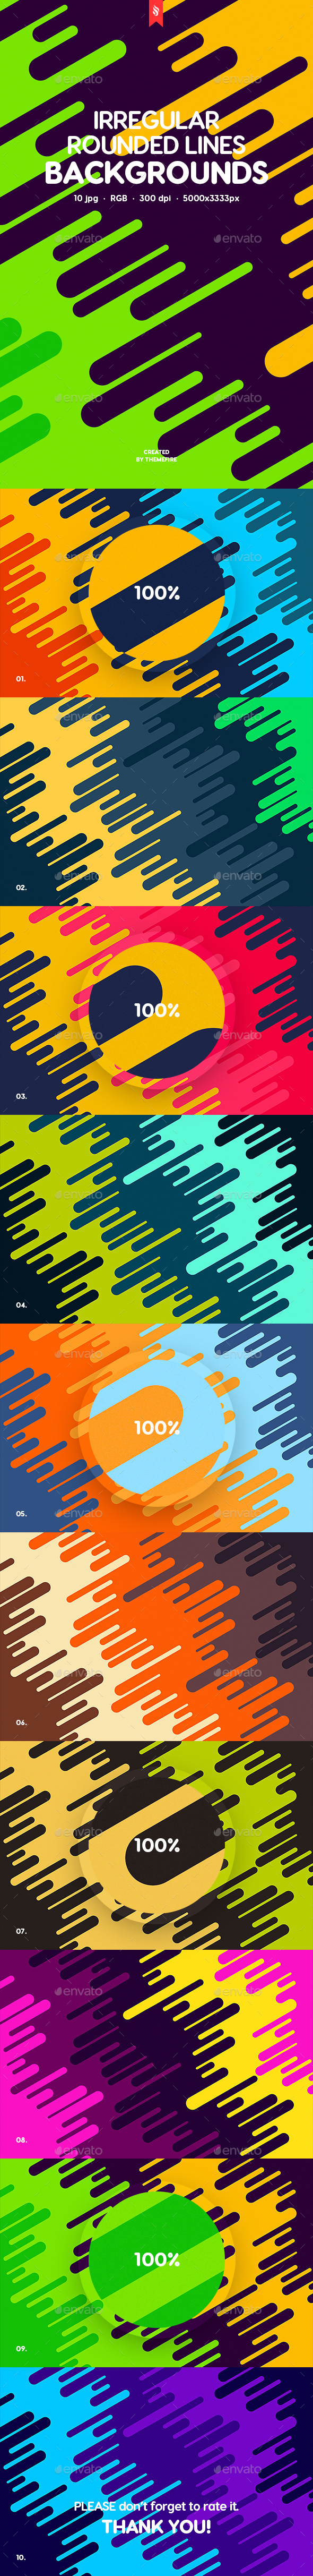 Flat Irregular Rounded Lines Backgrounds - Patterns Backgrounds